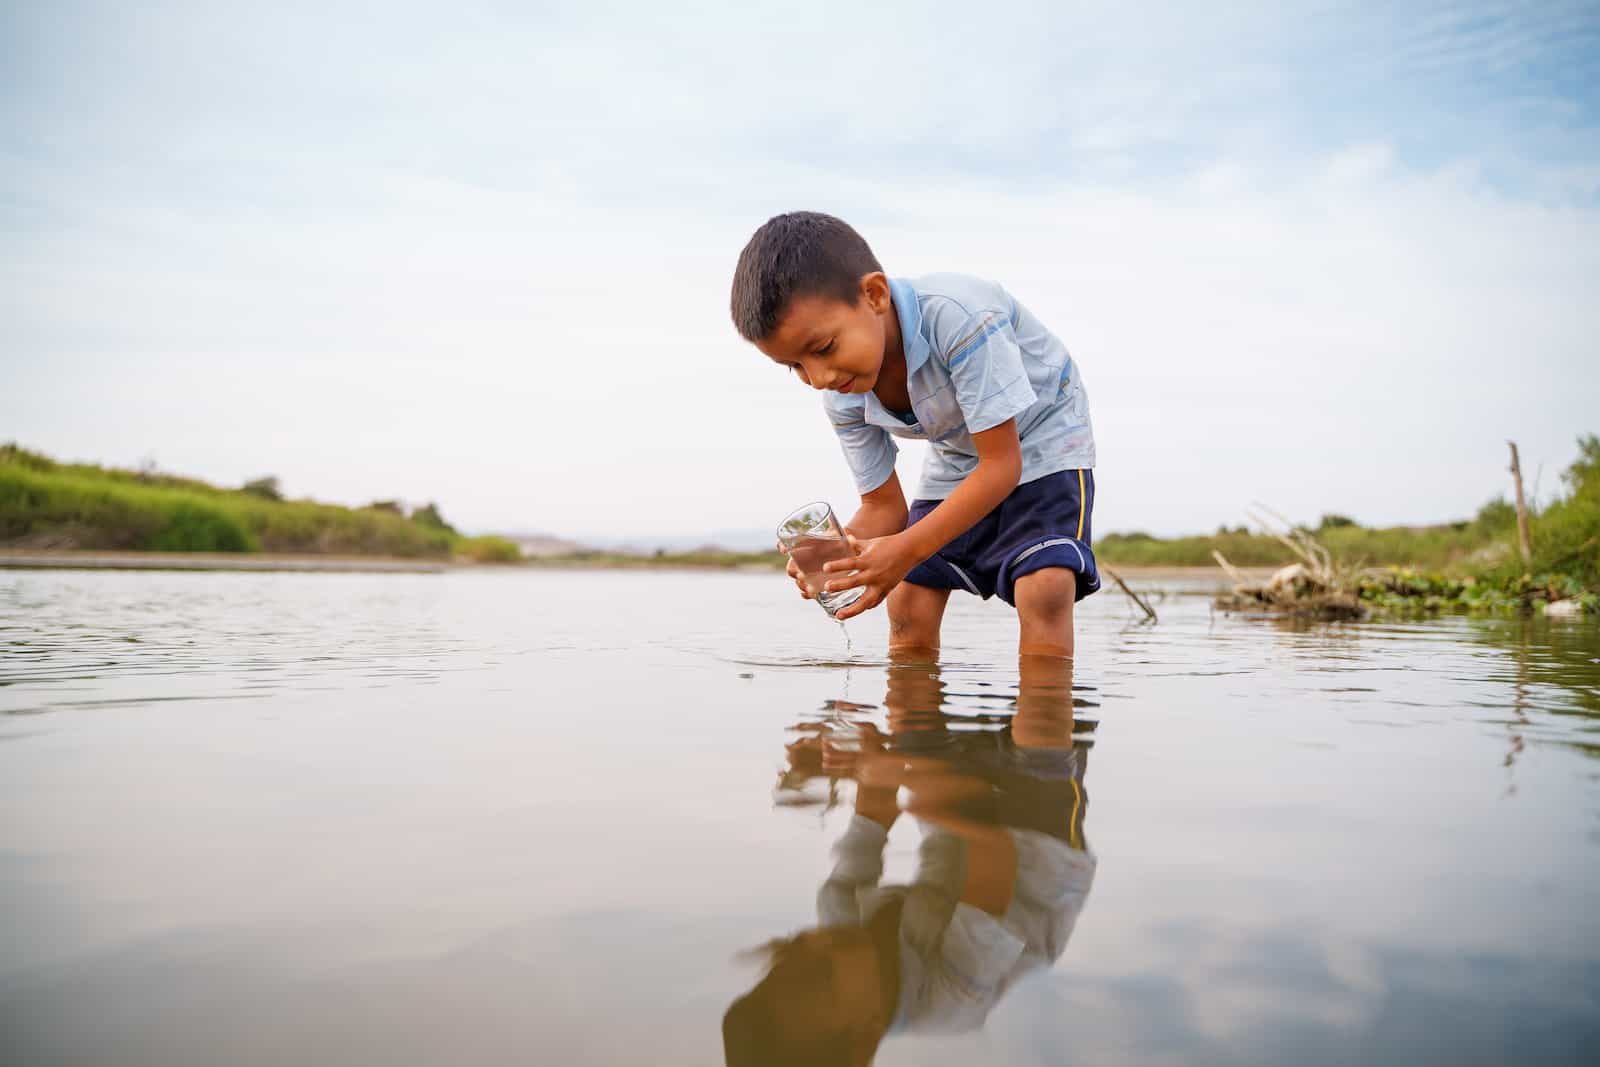 A boy leans over a river with a cup.